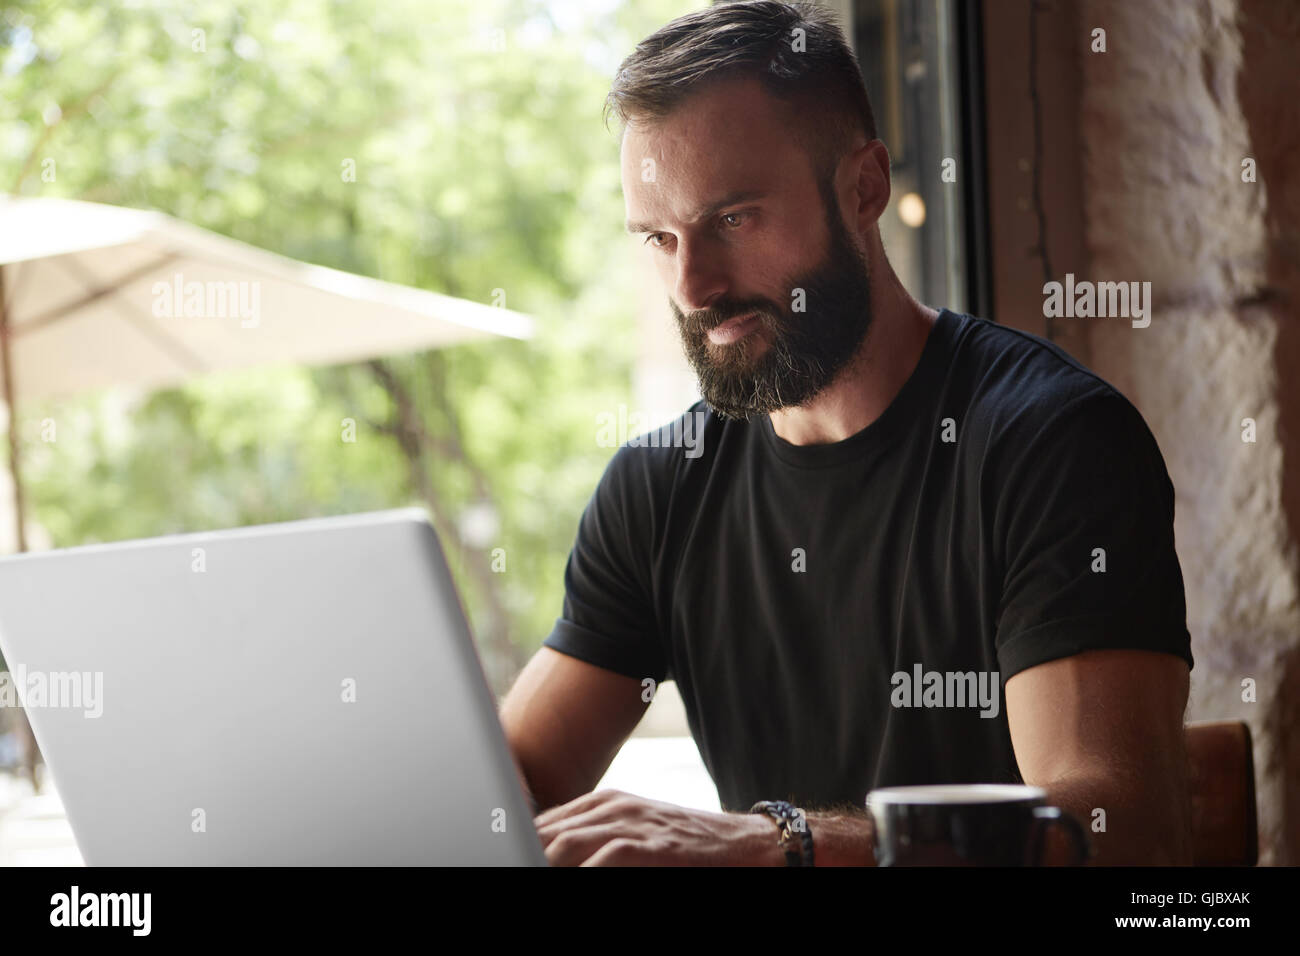 Concentrated Bearded Man Wearing Black Tshirt Working Laptop Wood Table Urban Cafe.Young Manager Work Notebook Modern - Stock Image